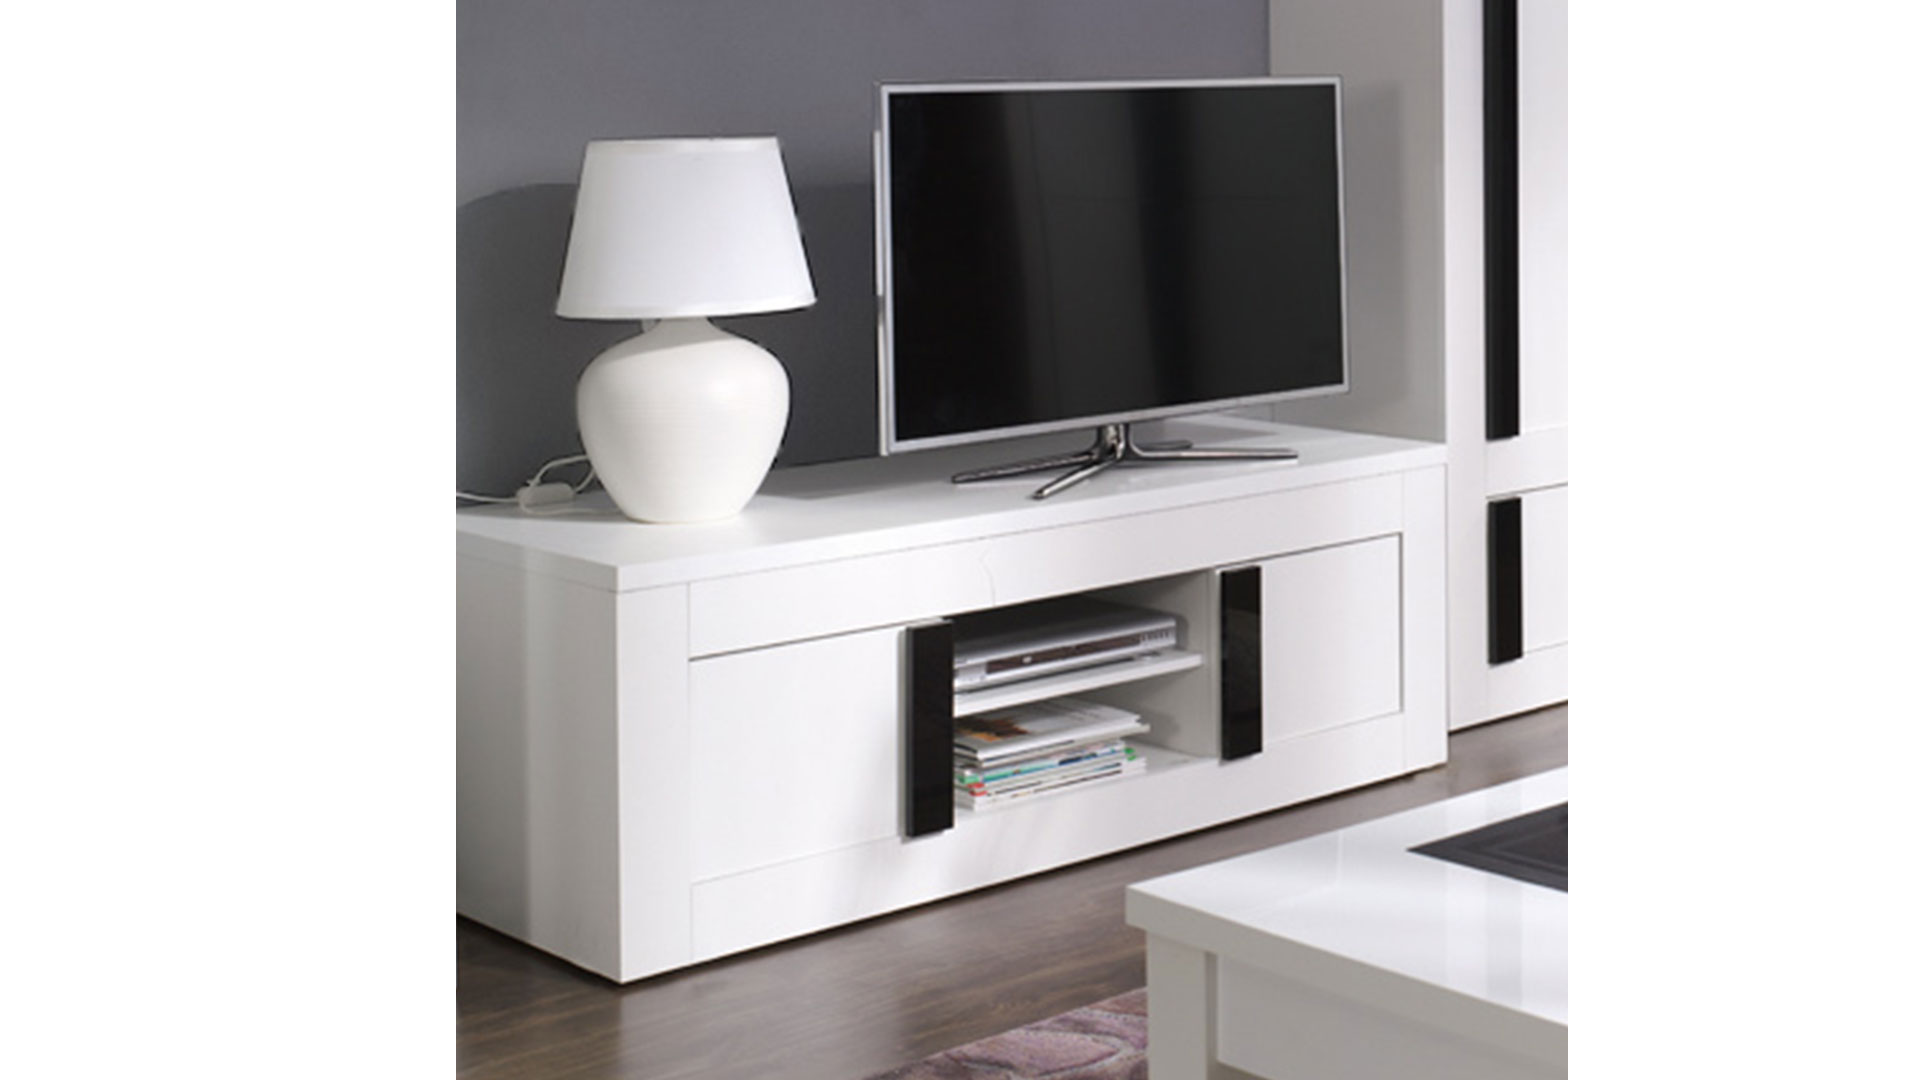 Meuble tv blanc laqu fly large size of moderne und meuble for Meuble tv noir laque fly